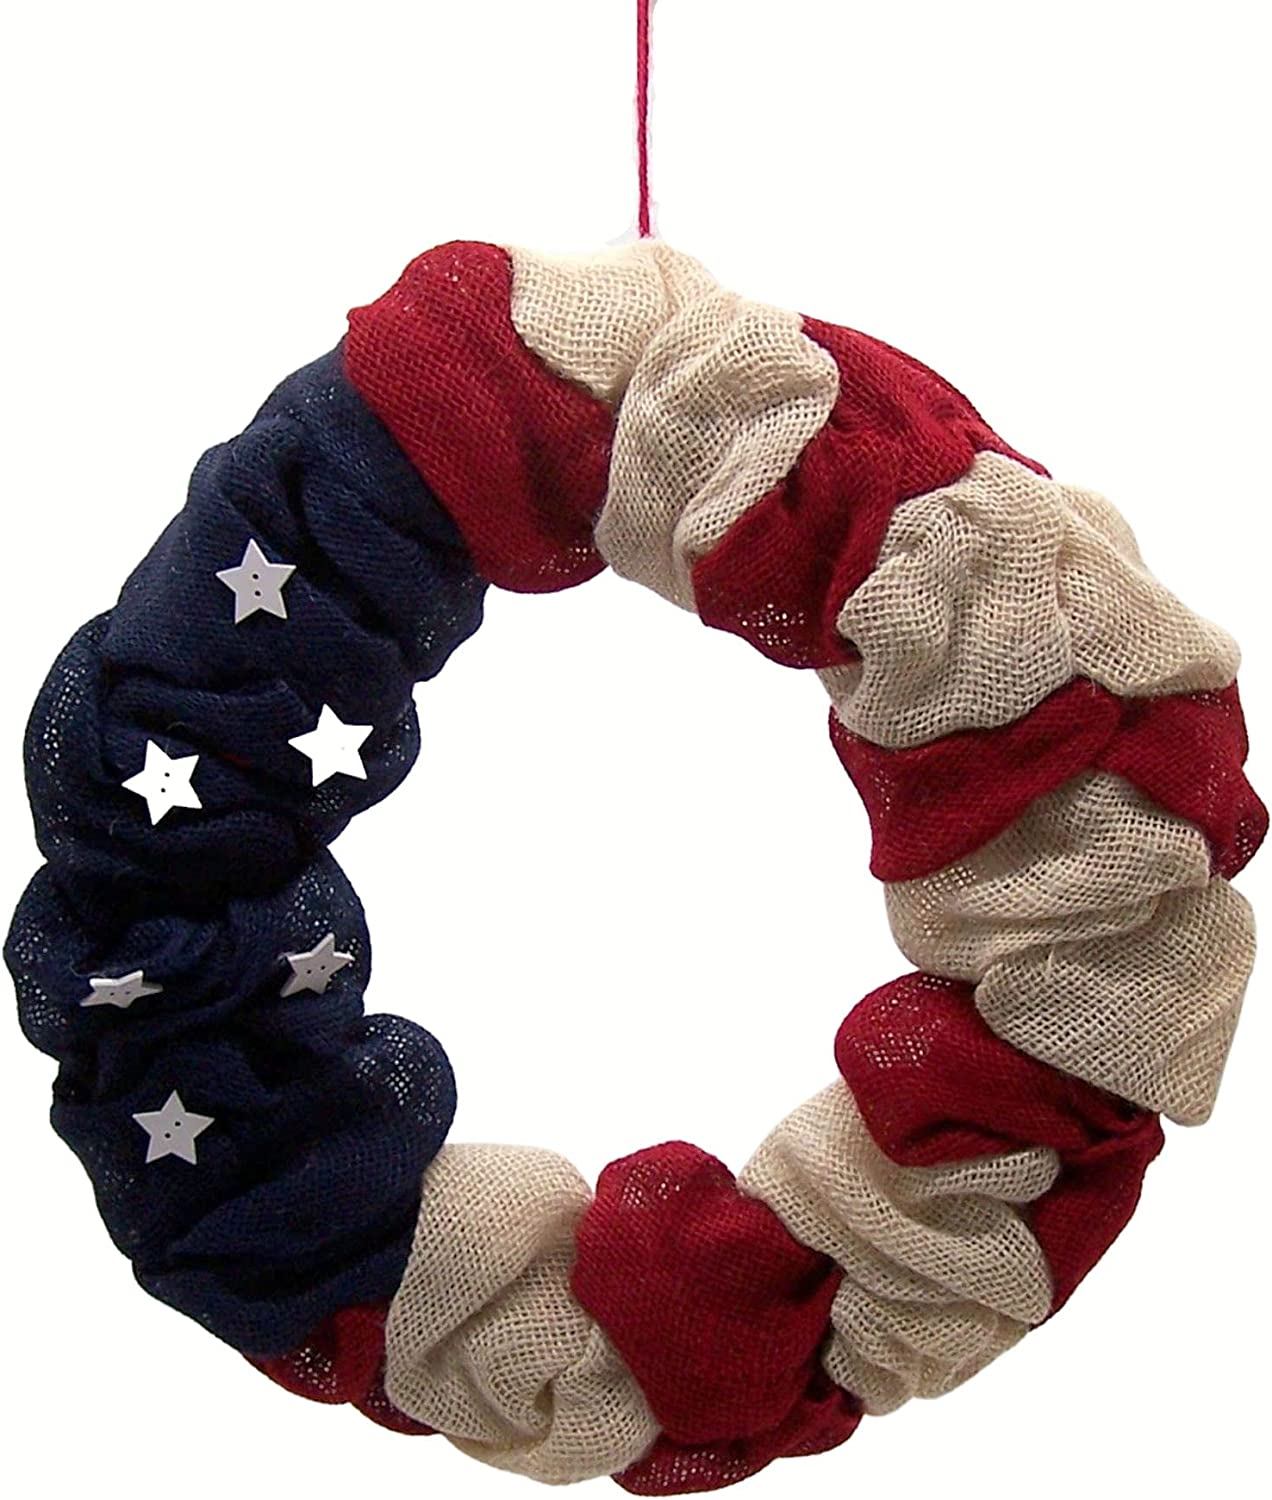 Patriotic Red White and Blue Sales Rare for sale with Wreath Fabric Flag Decorative